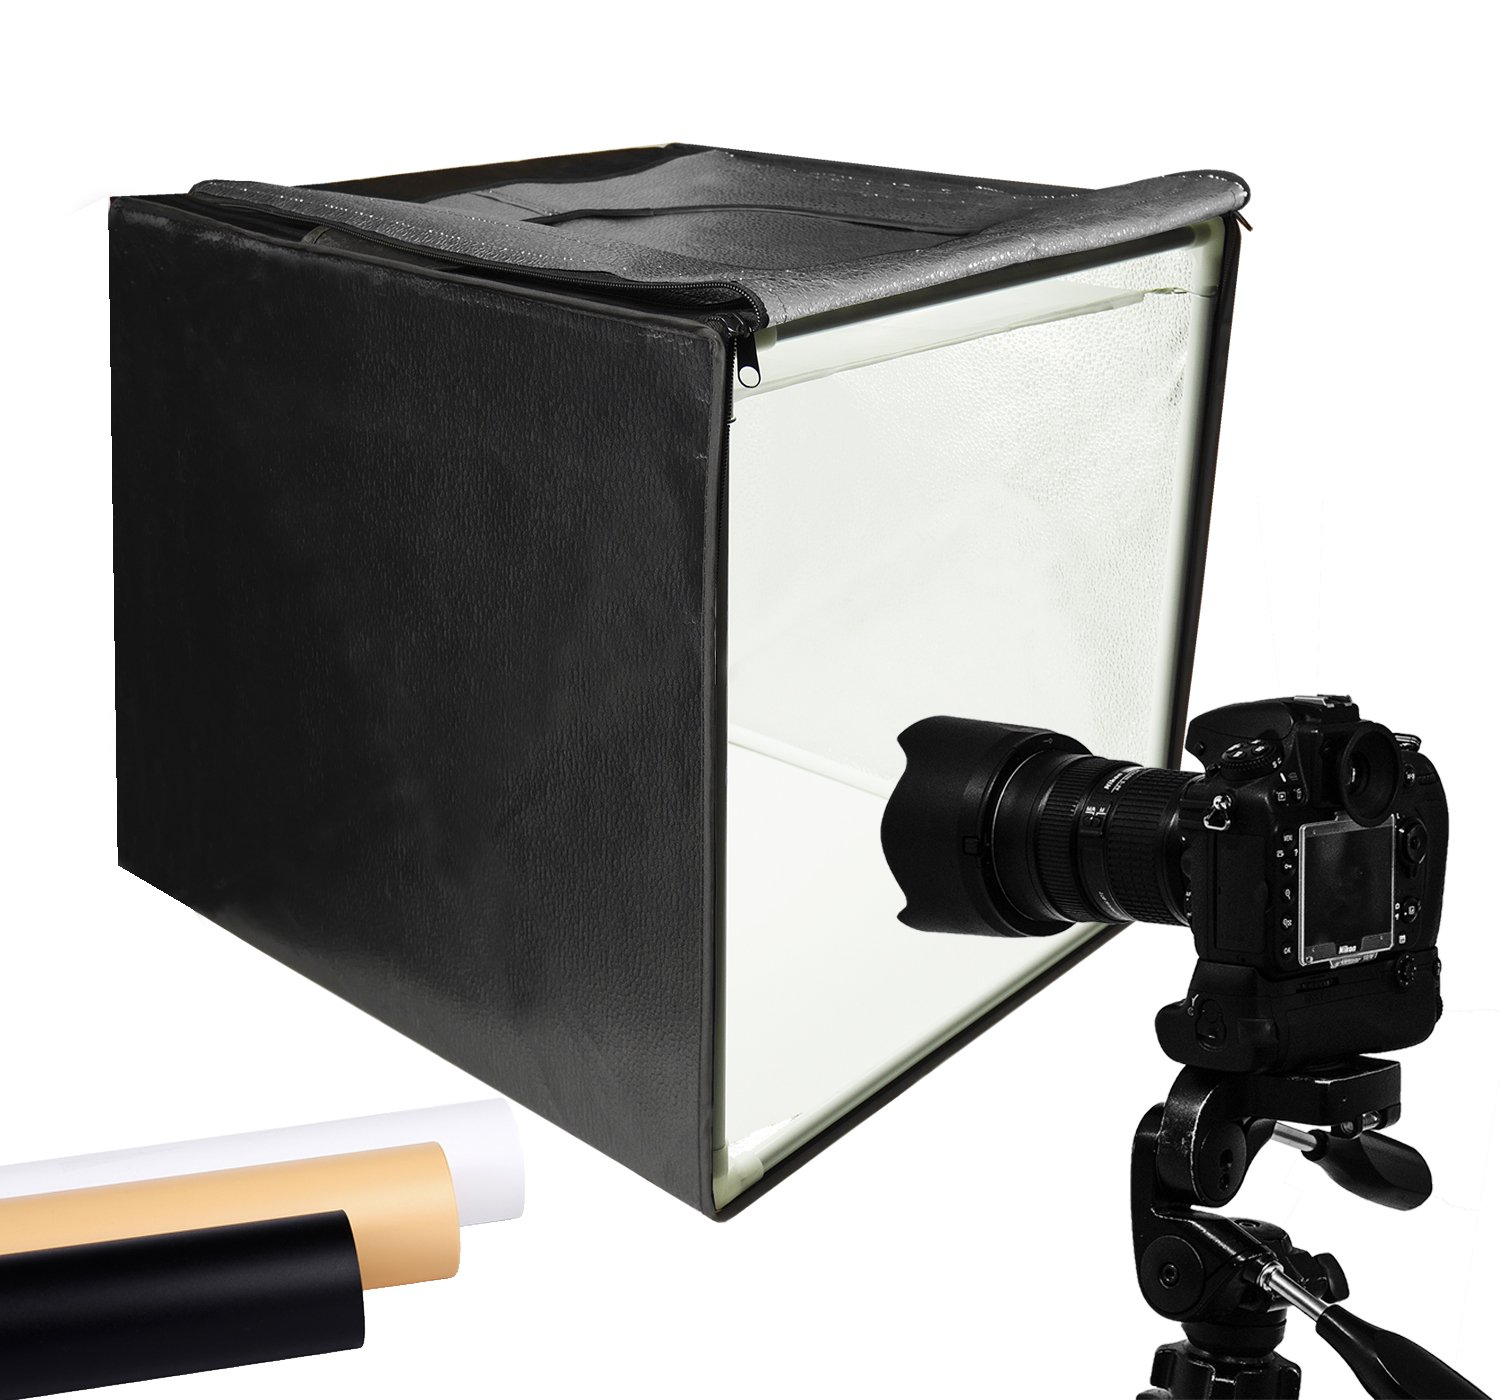 Finnhomy Professional Portable Photo Studio Photo Light Studio Photo Tent Light box Table Top Photography Shooting Tent Box Lighting Kit, 16'' x 16'' Cube by Finnhomy